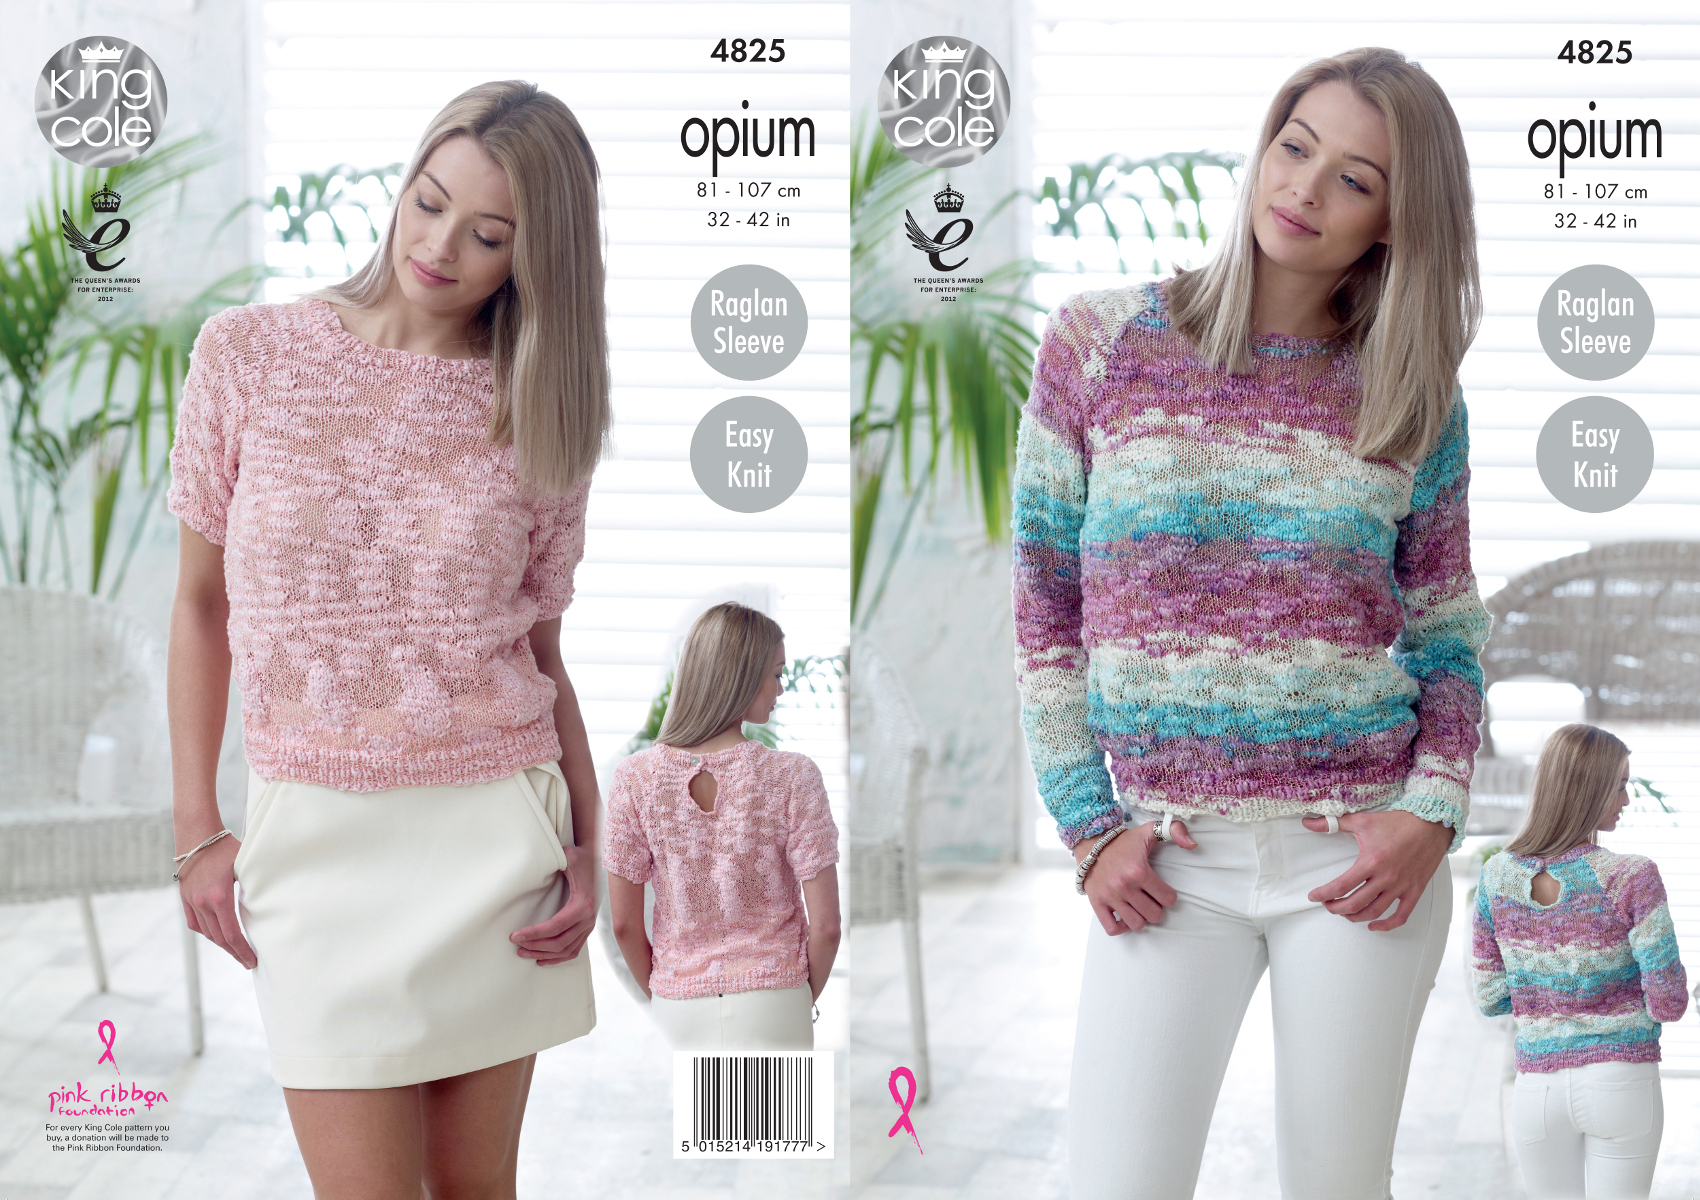 Easy Jumper Knitting Pattern Details About Easy Knit Sweater Jumper Ladies Knitting Pattern King Cole Opium Womens 4825